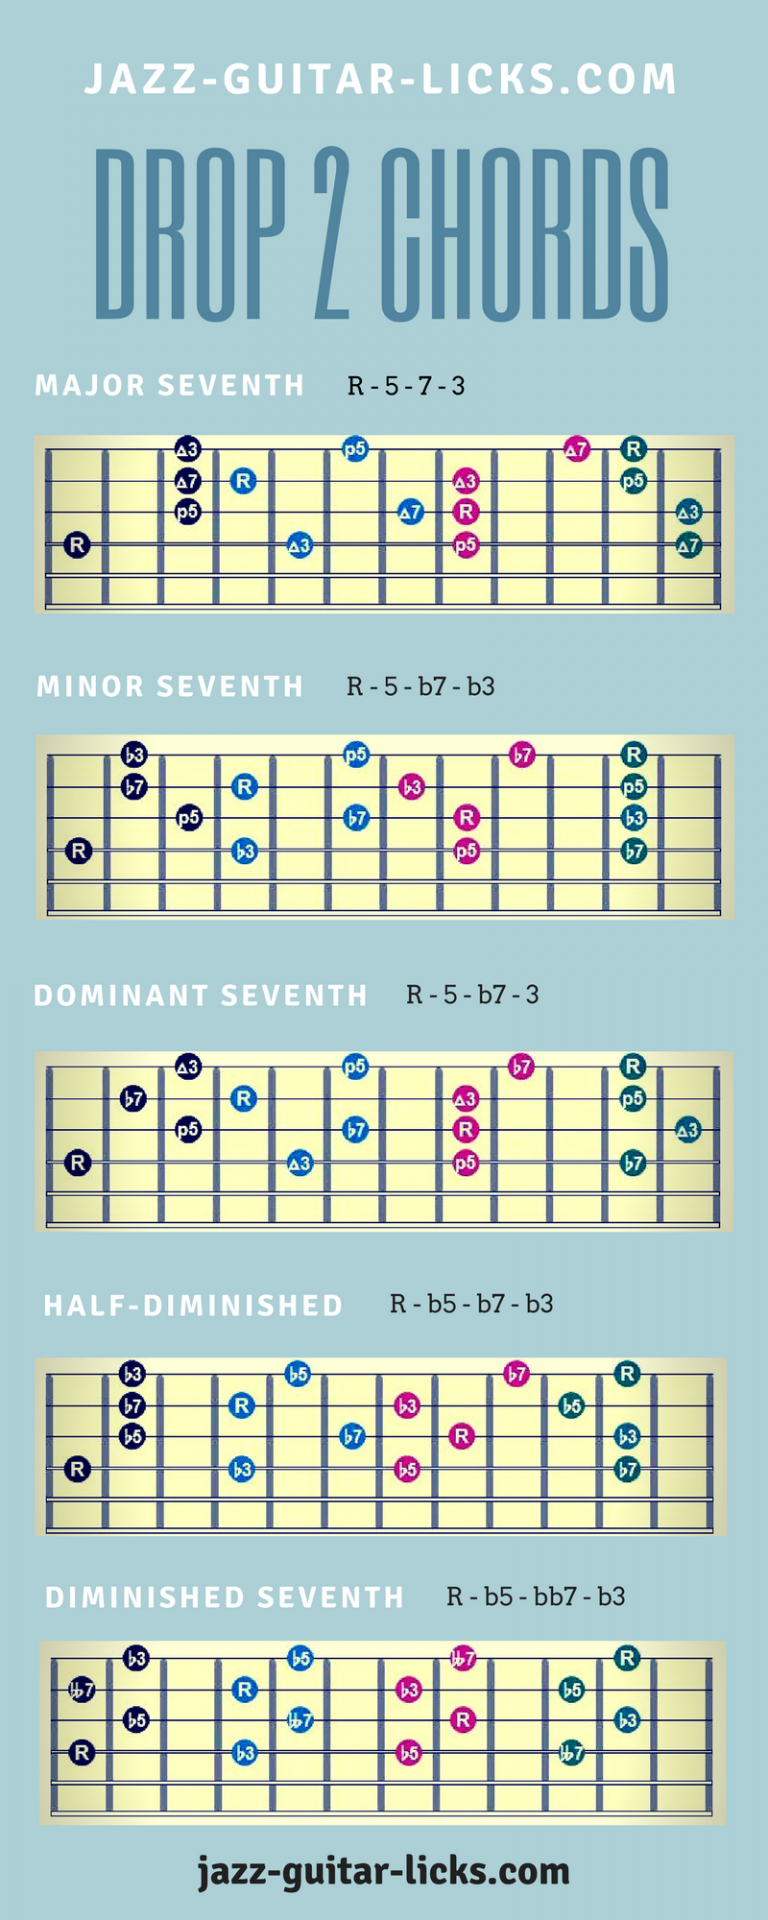 Drop 2 guitar chords infographic